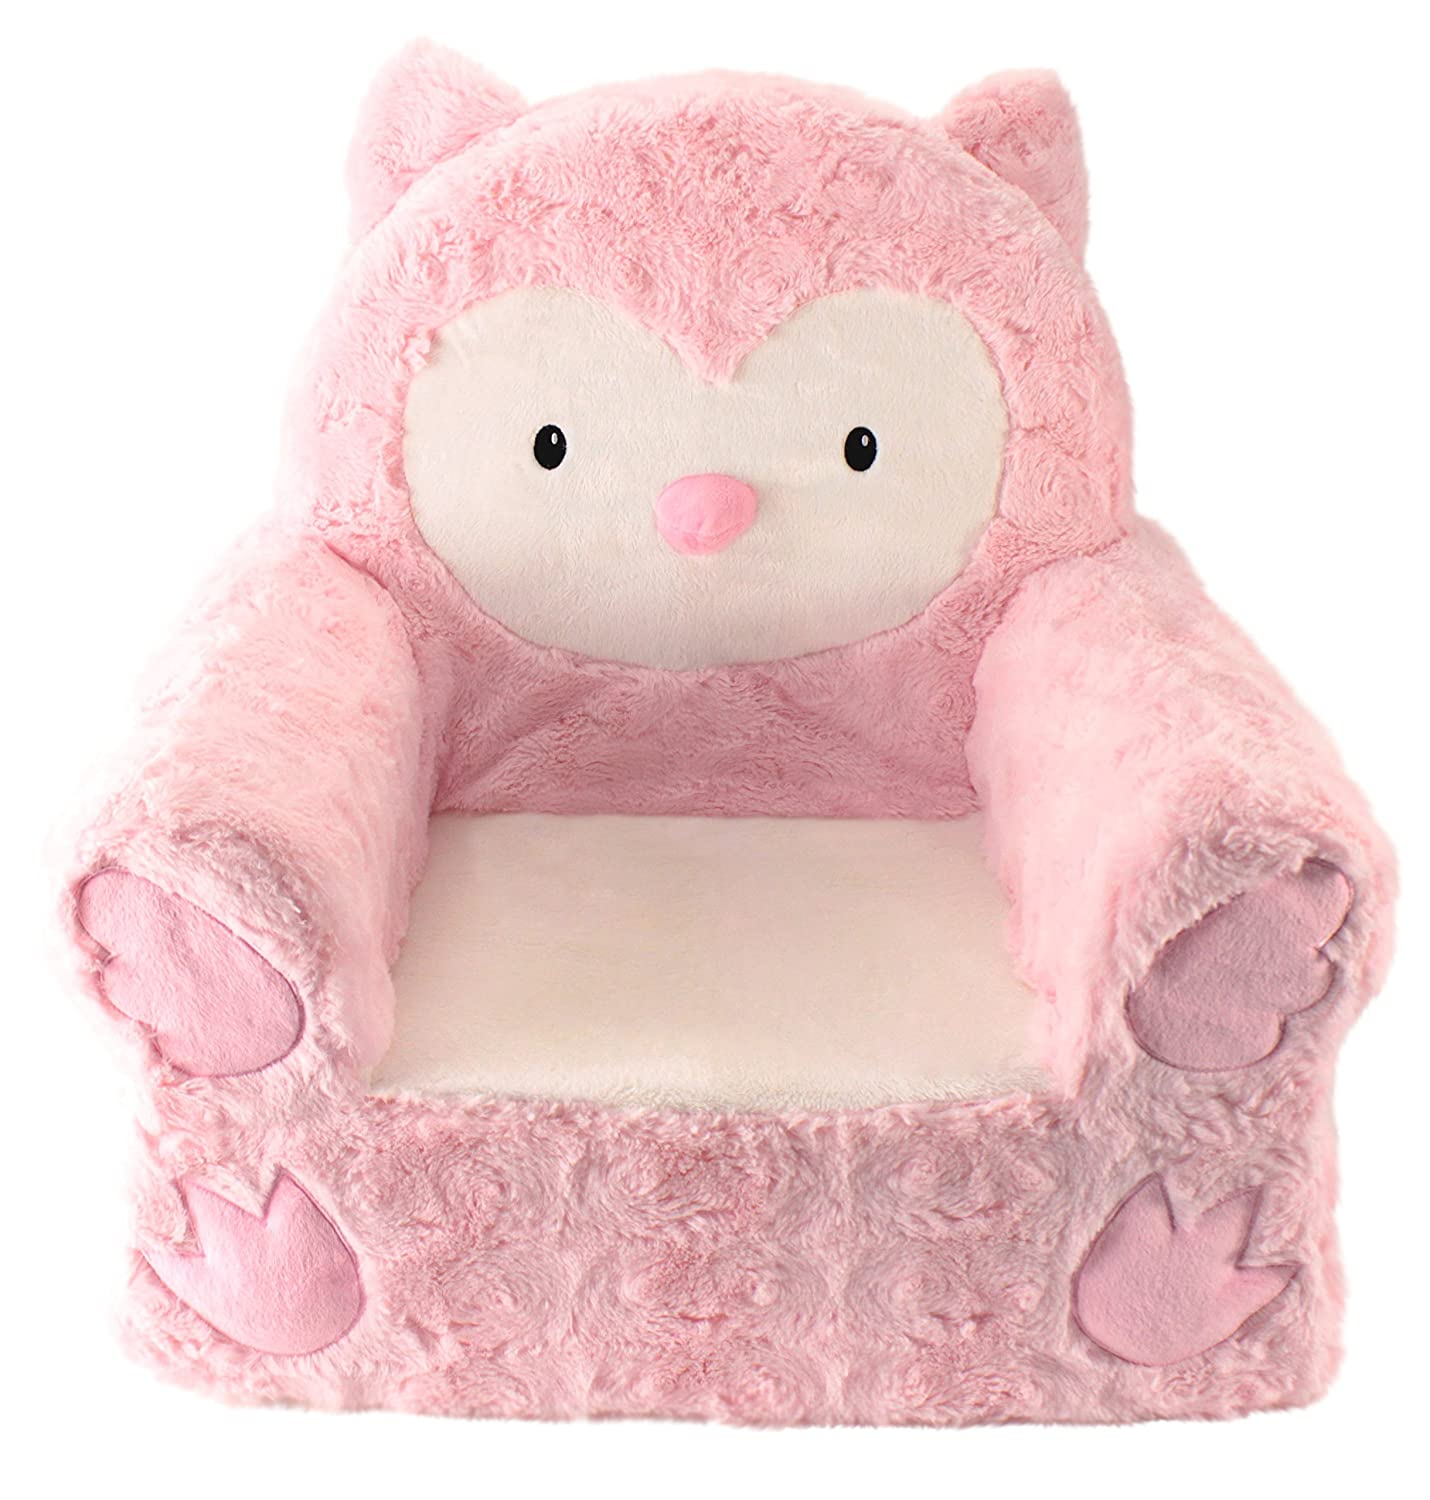 Animal Adventure Sweet SeatsPink Owl Children's ChairLarge SizeMachine Washable Cover